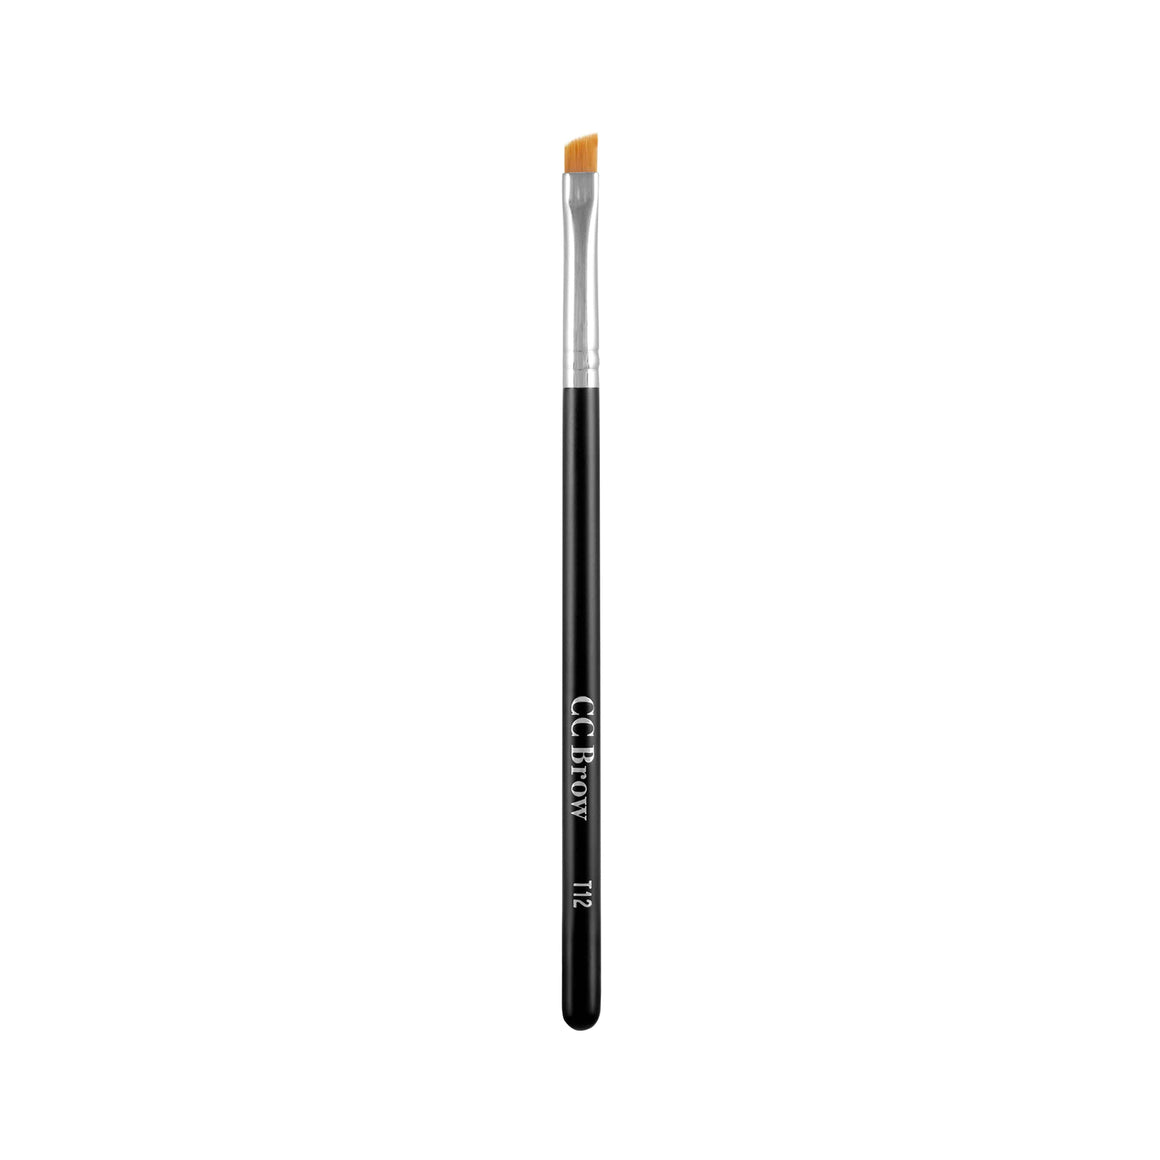 Brush for henna Т11 CC Brow - Beauty Shop Direct